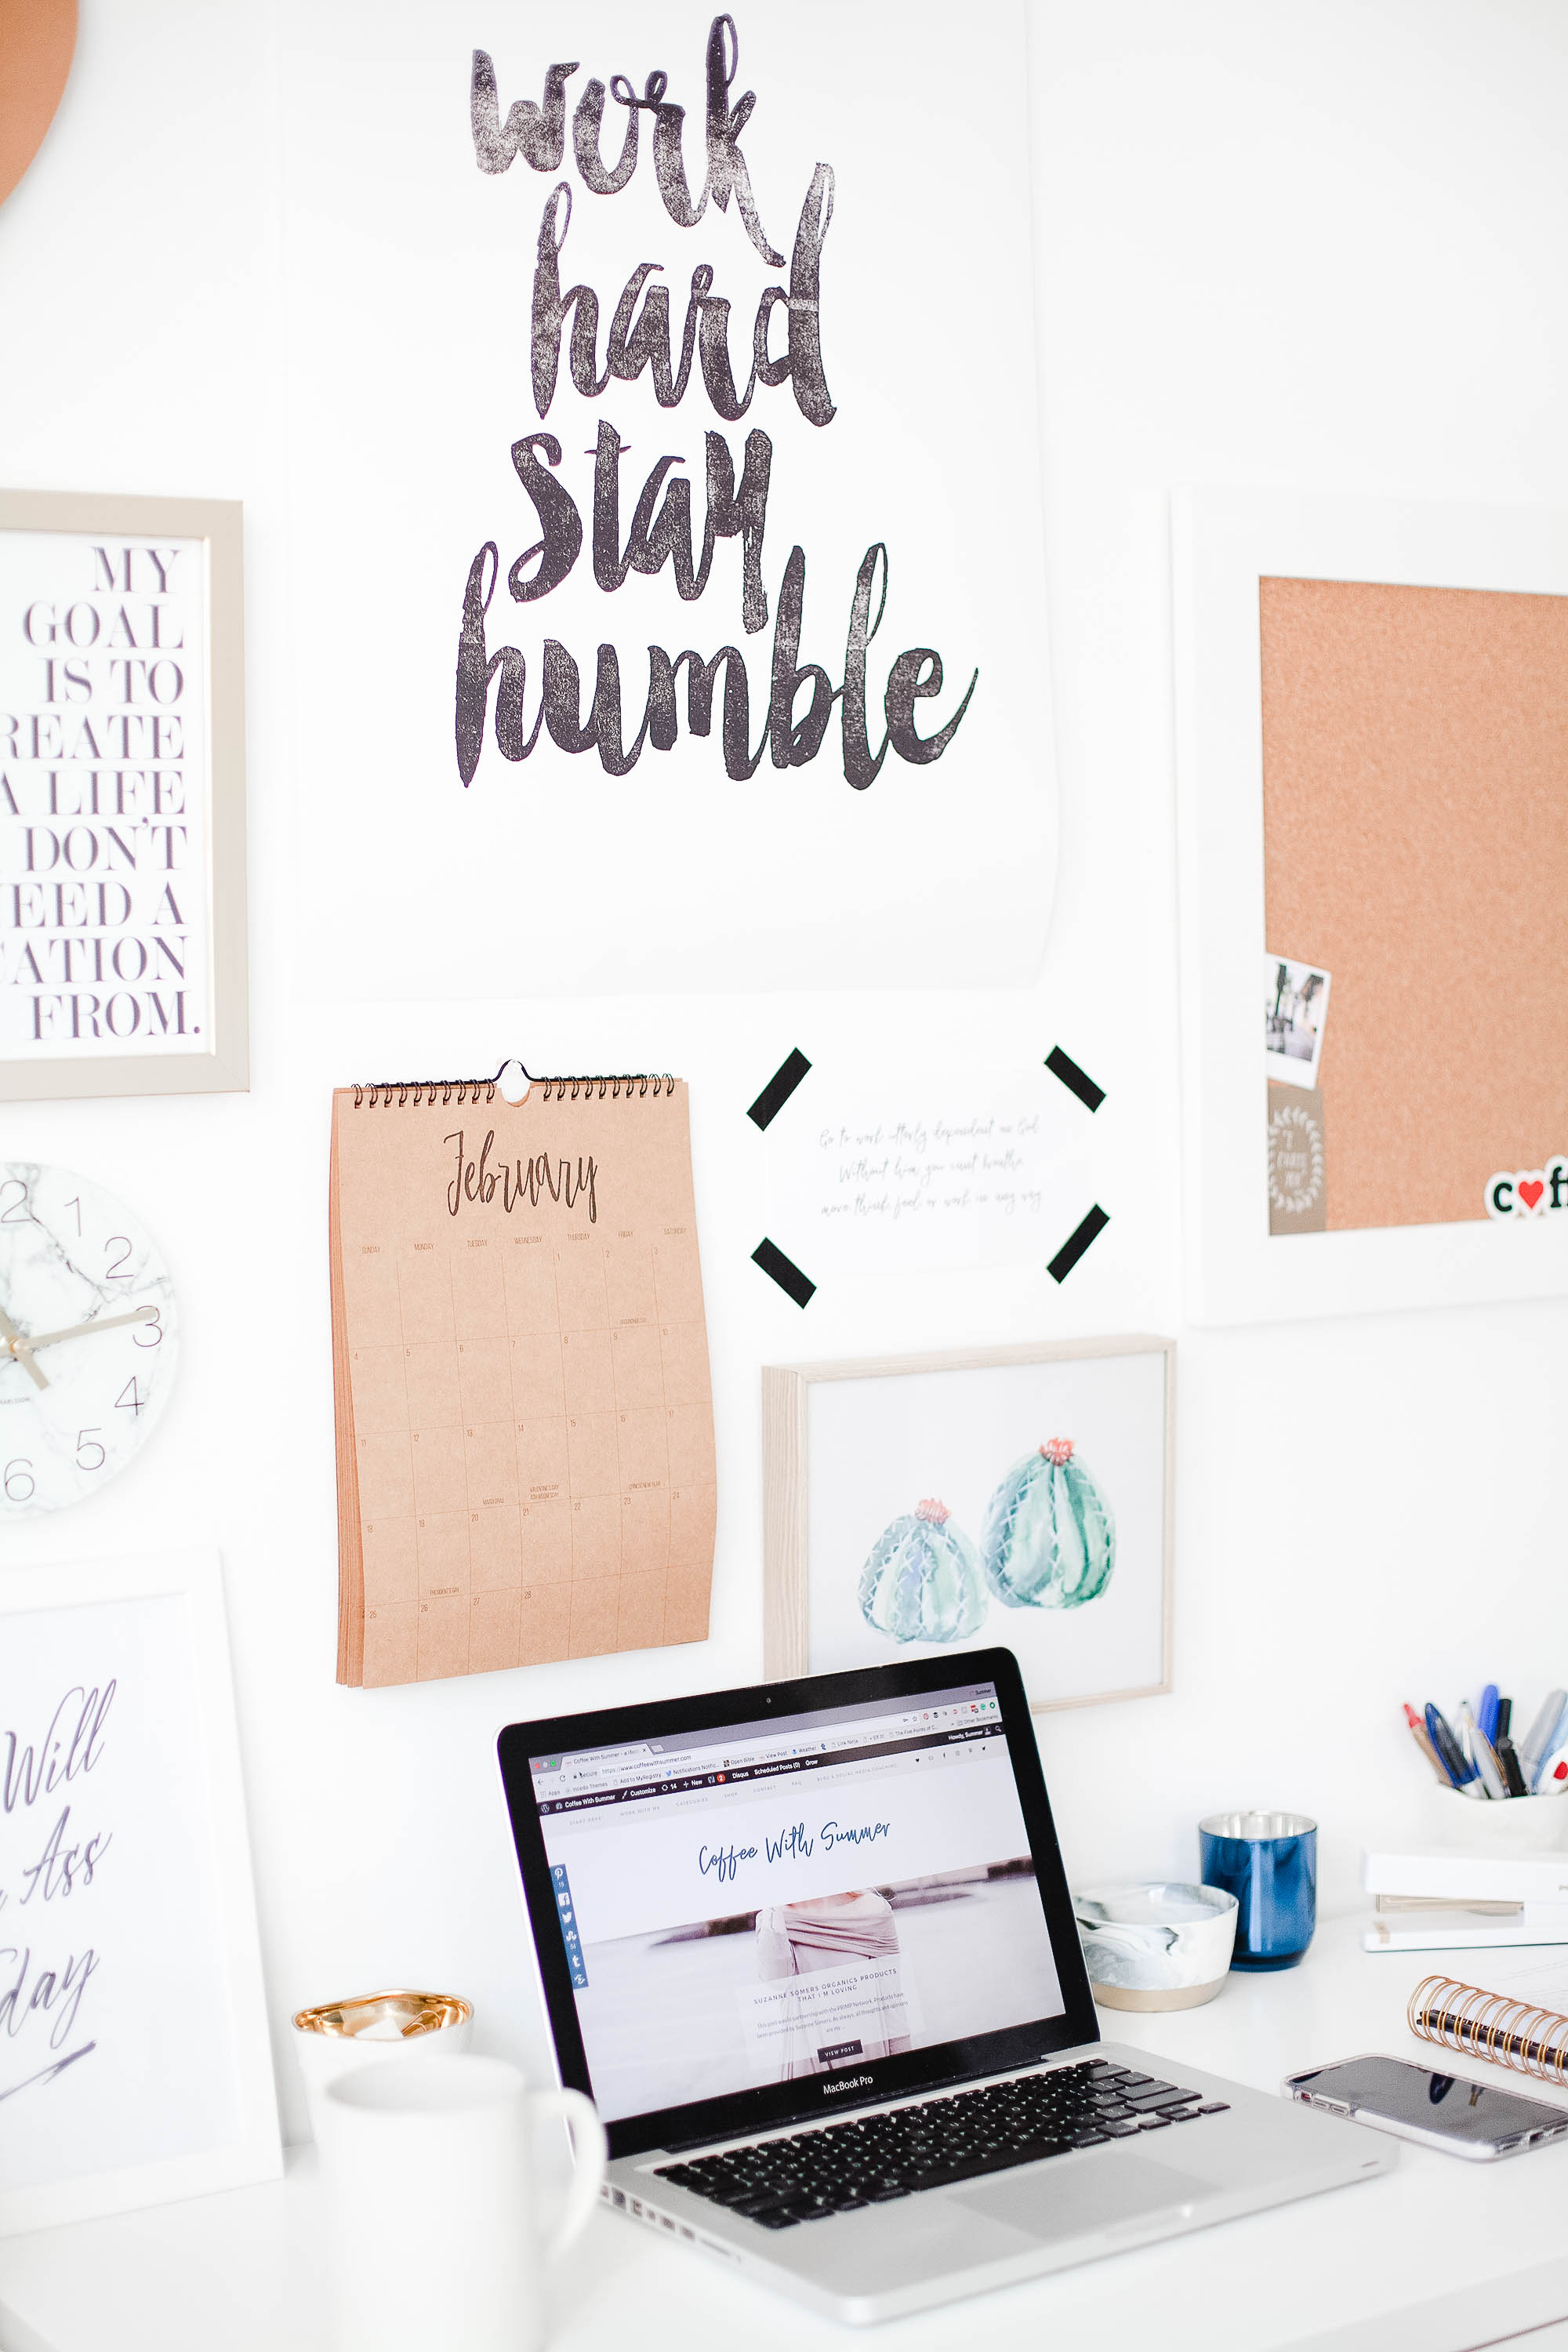 How To Create A Productive Desk Space | Coffee With Summer